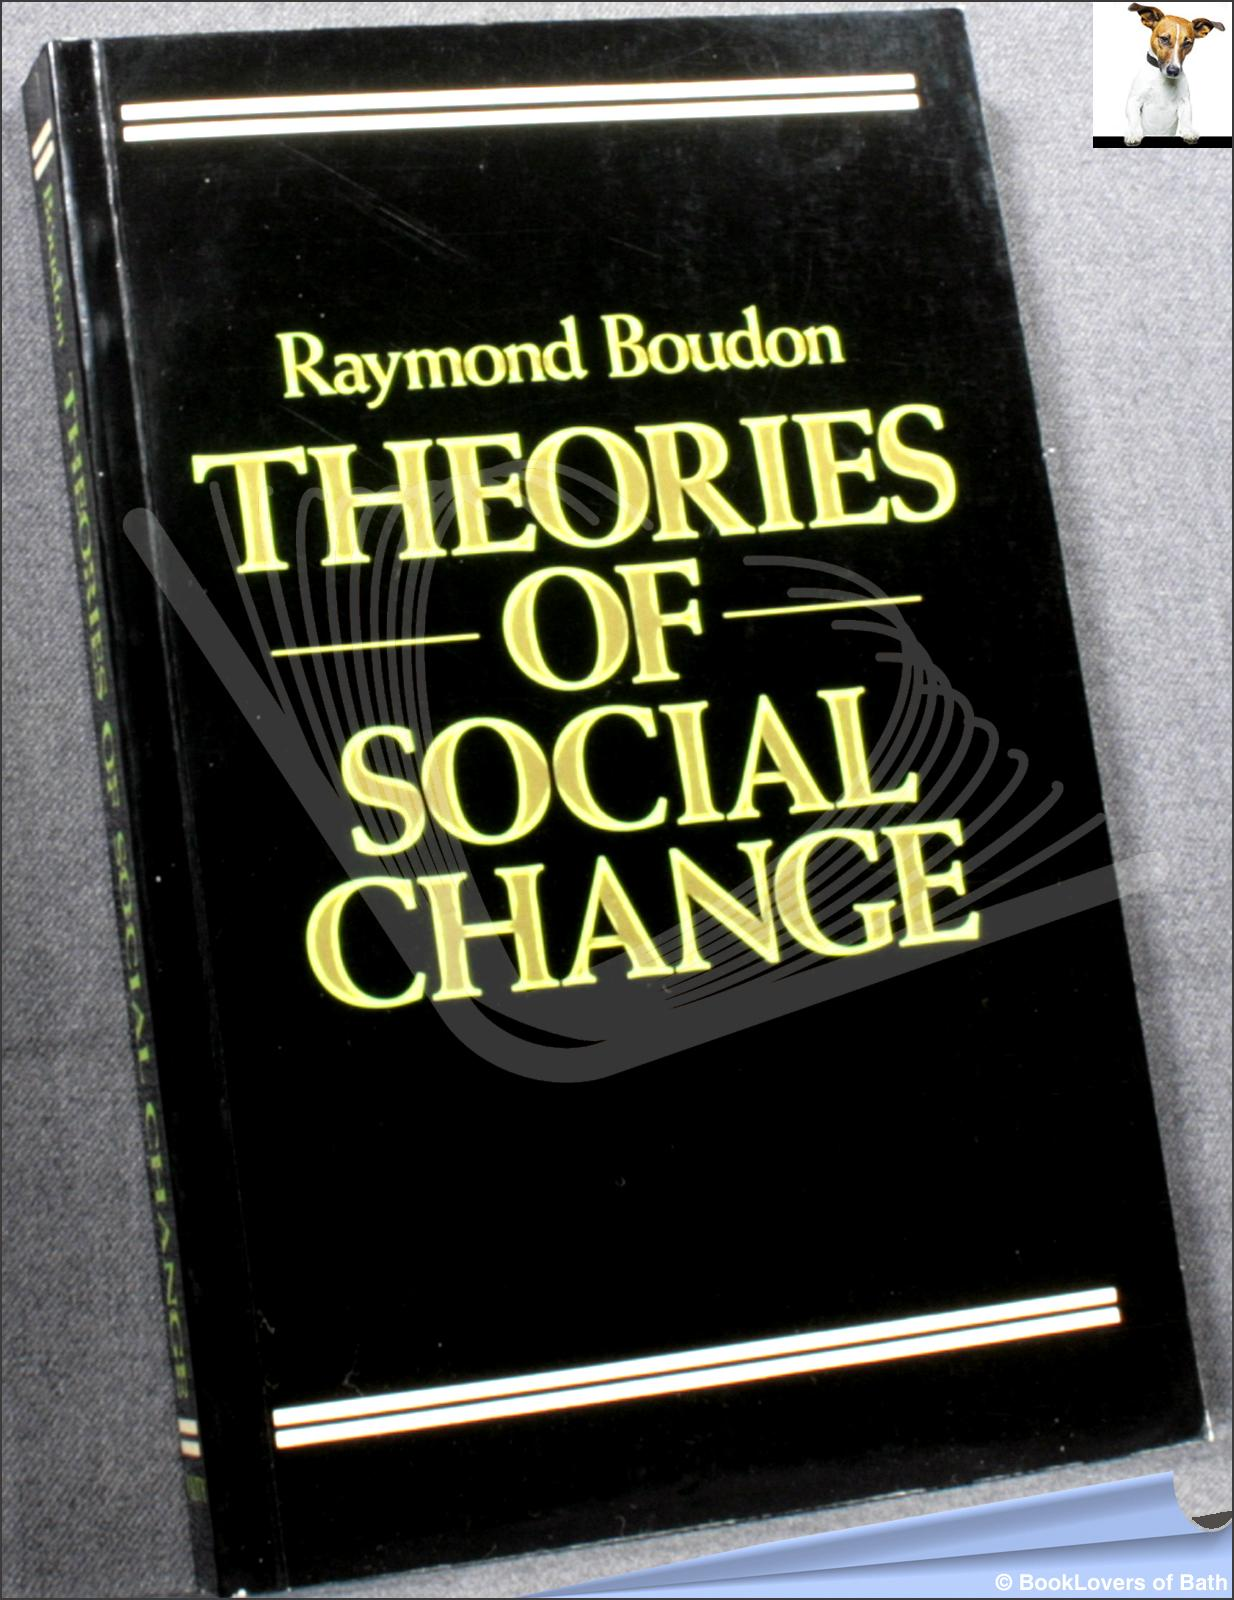 Theories of Social Change: A Critical Appraisal - Raymond Boudon